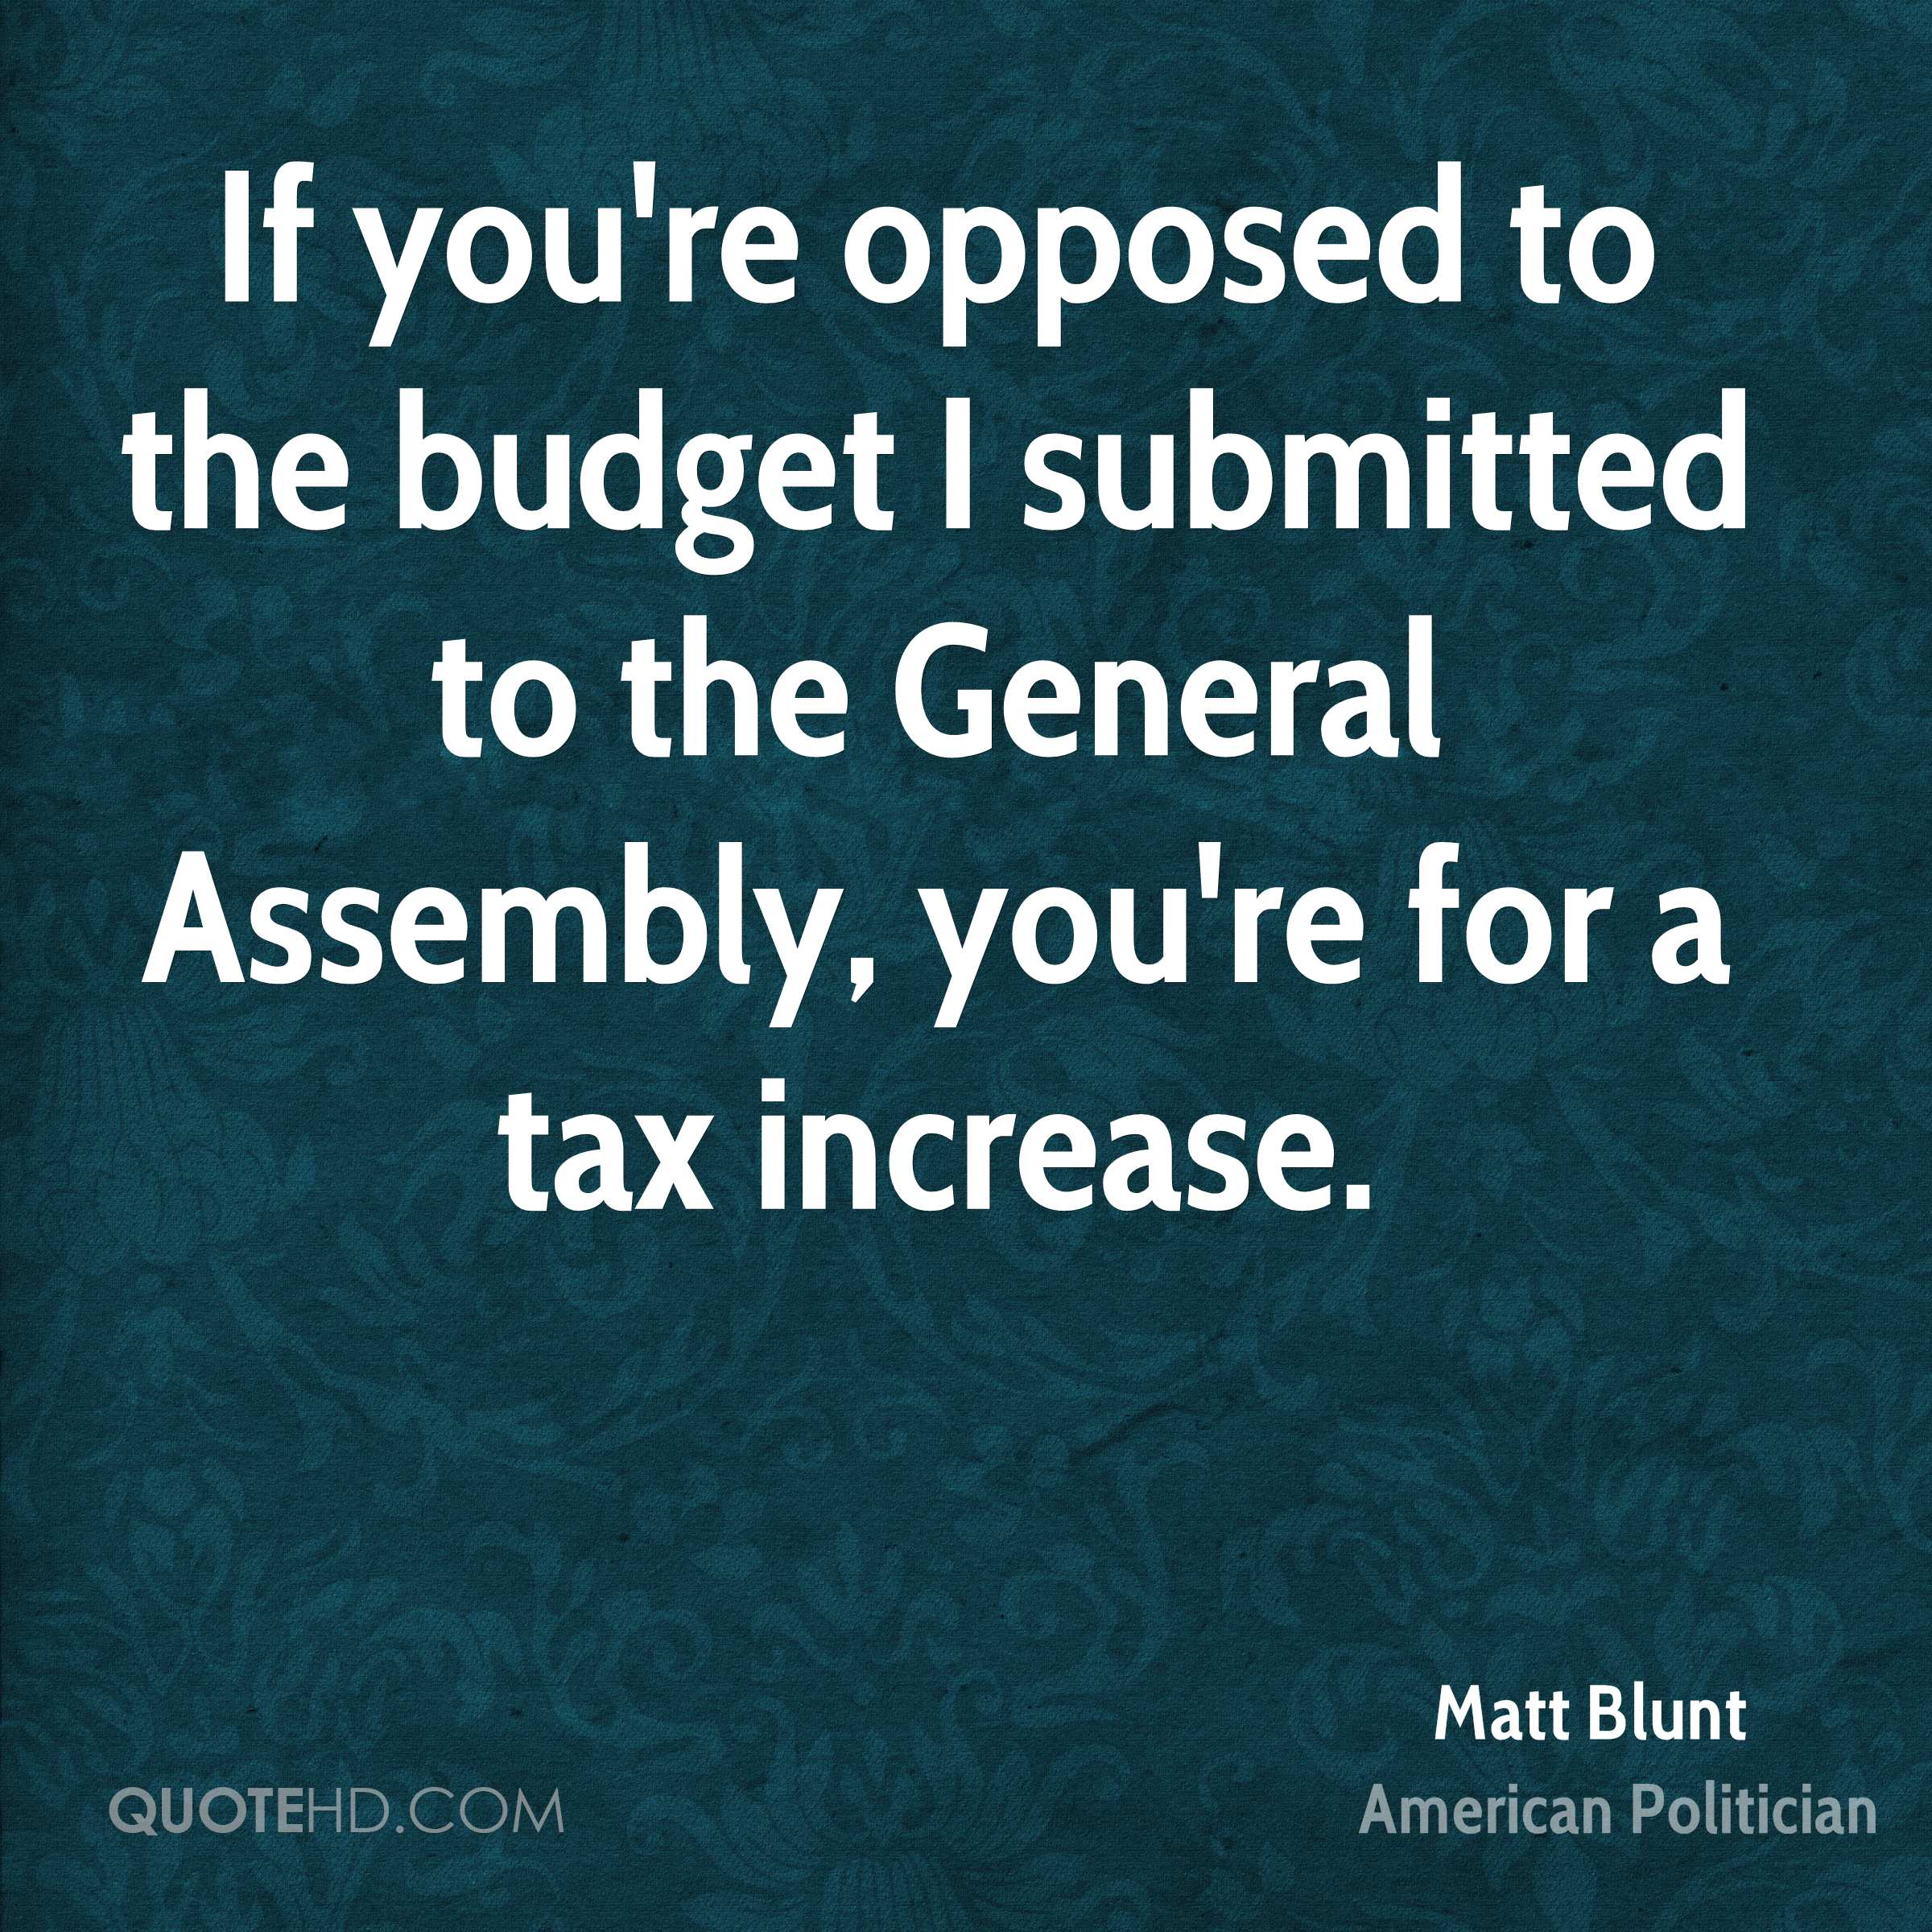 If you're opposed to the budget I submitted to the General Assembly, you're for a tax increase.